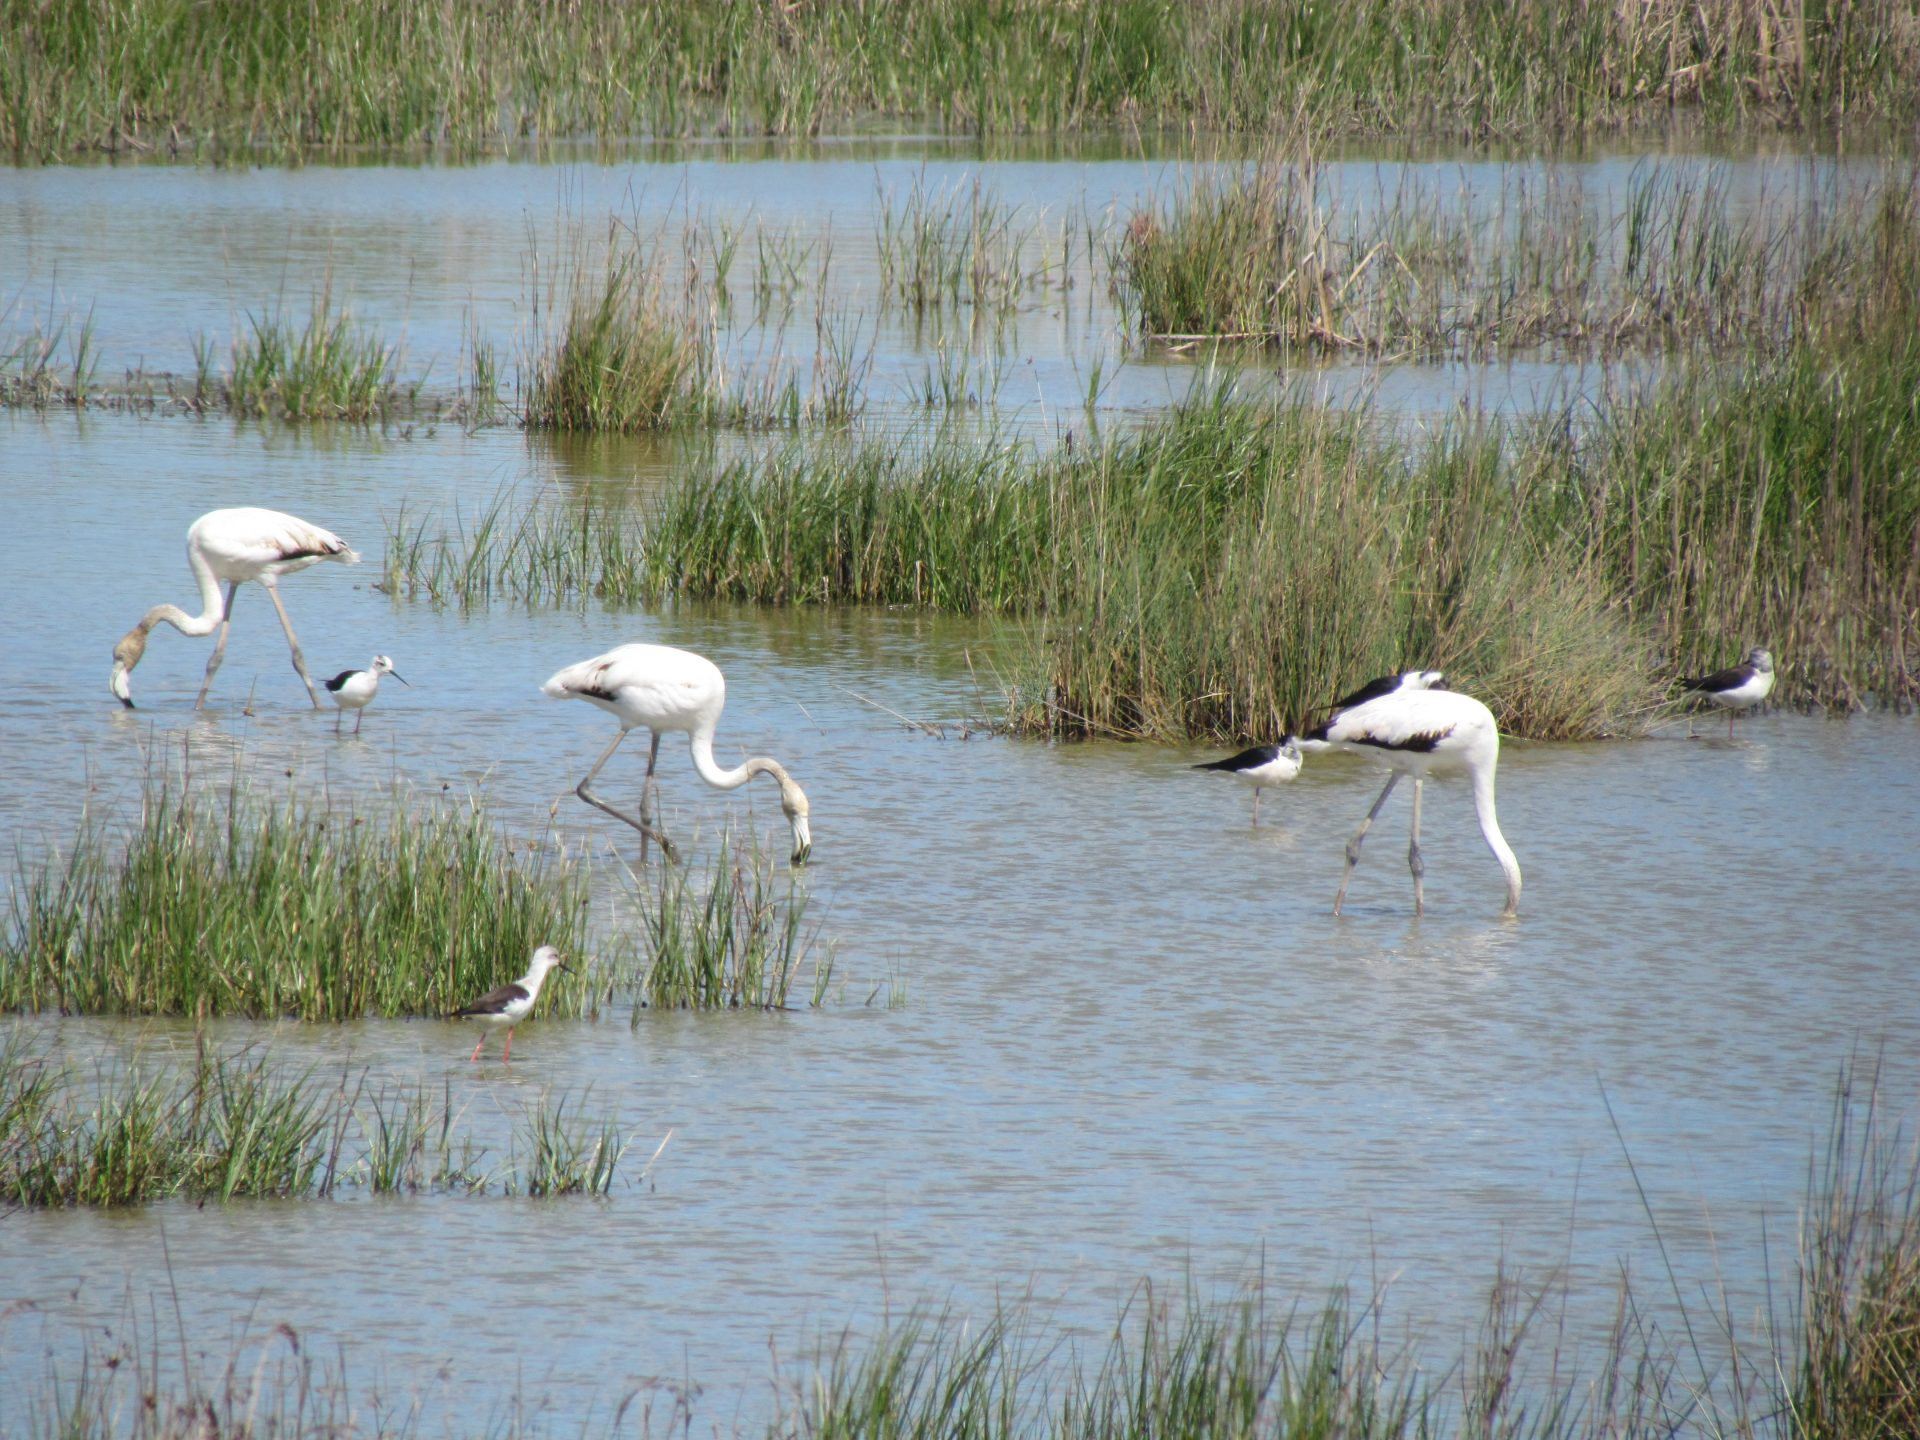 Flamingos and Black-winged Stilts in a wetland